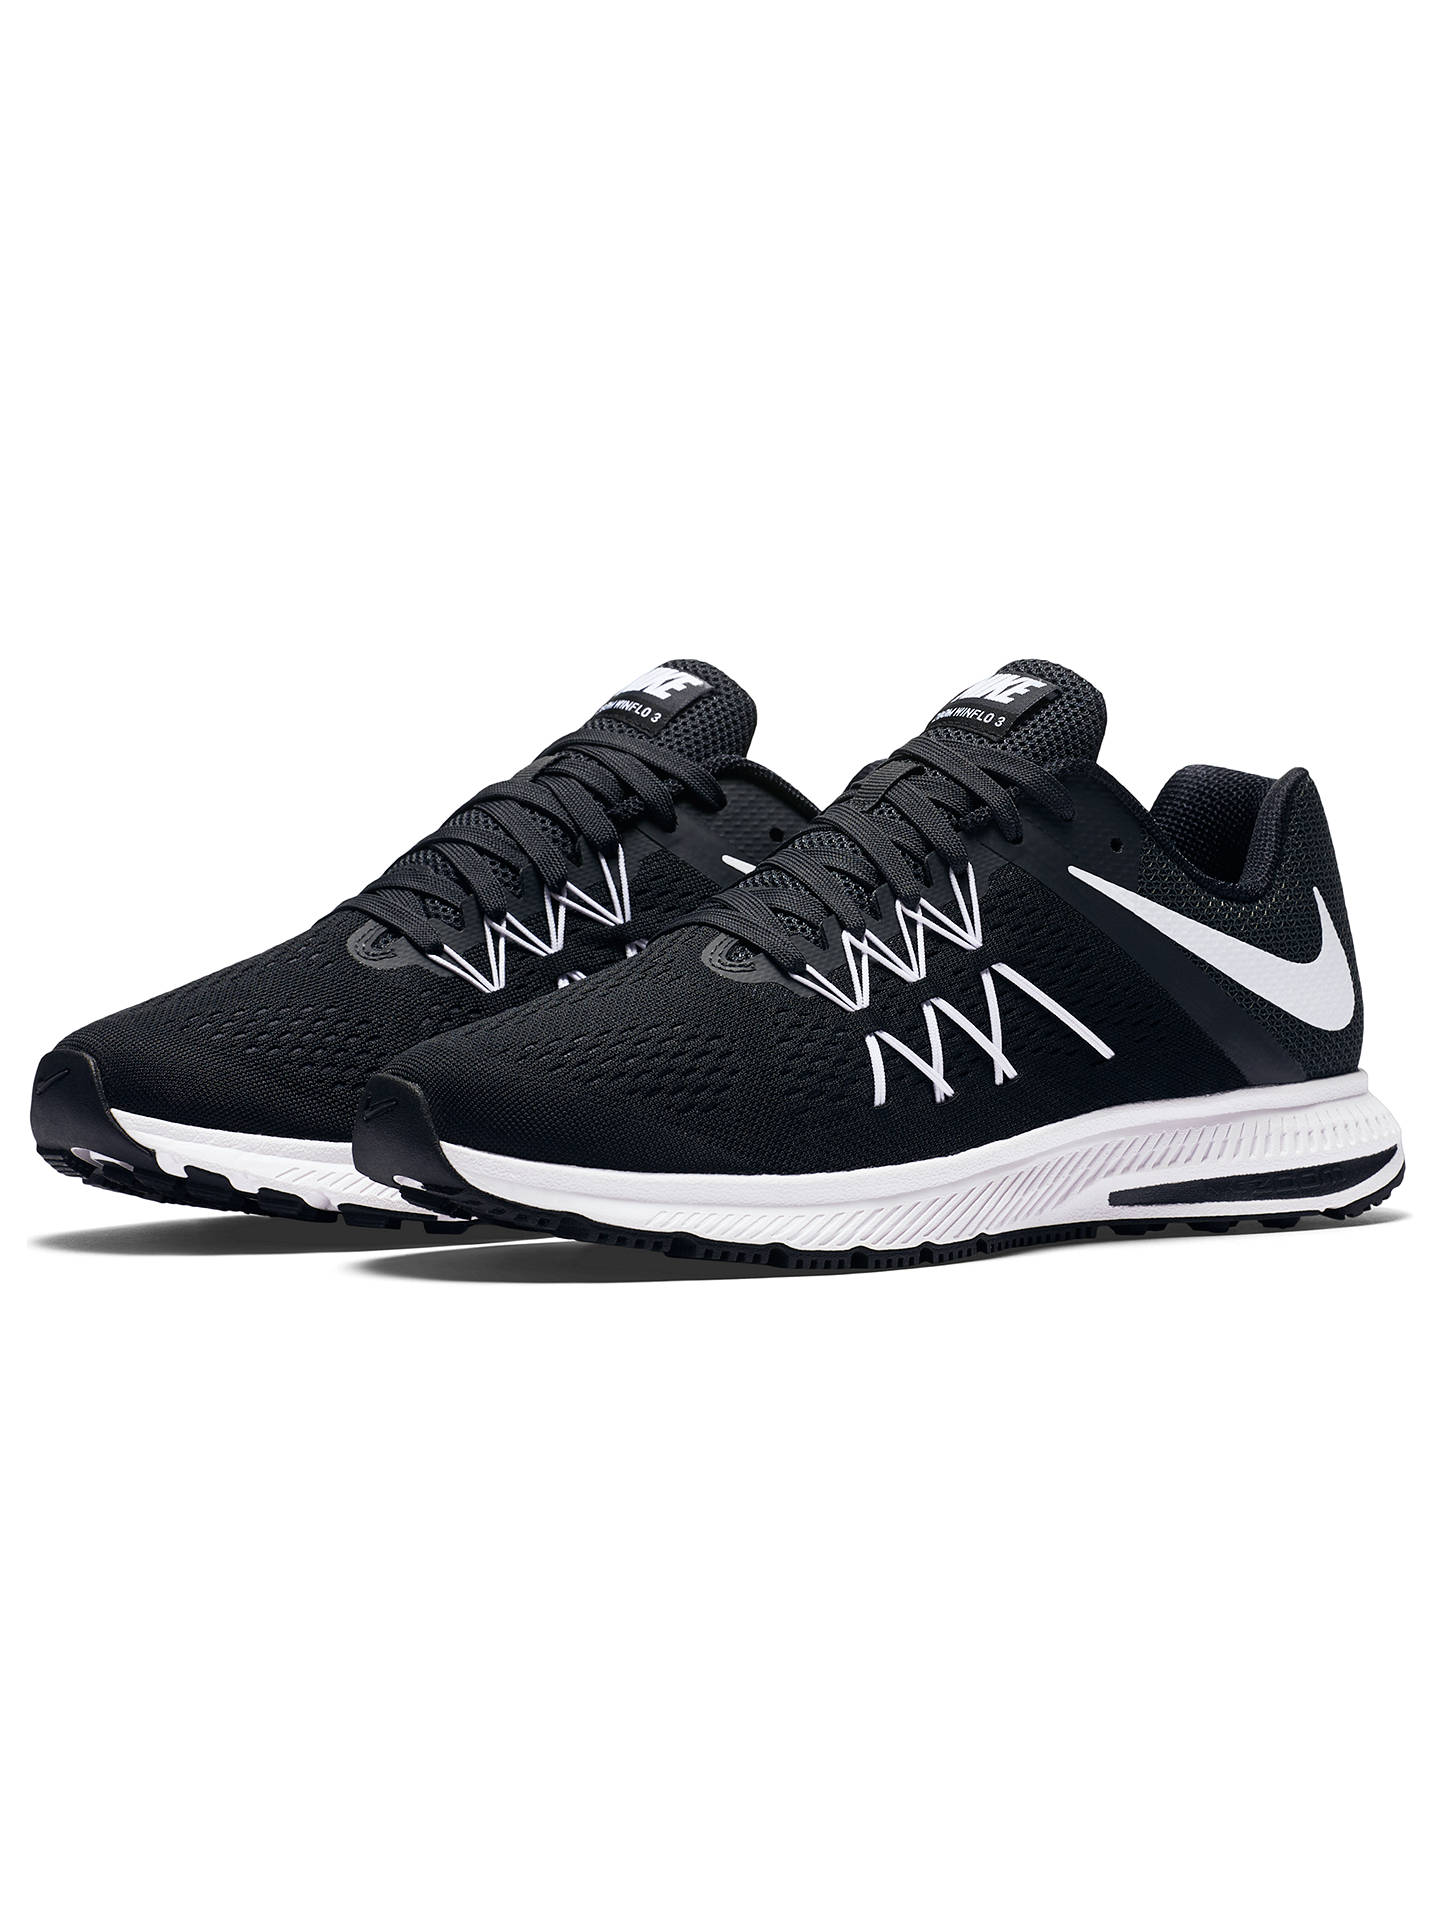 bf69fe8f24ea ... discount buynike air zoom winflo 3 mens running shoes black white 7  online at 2d26e e60db